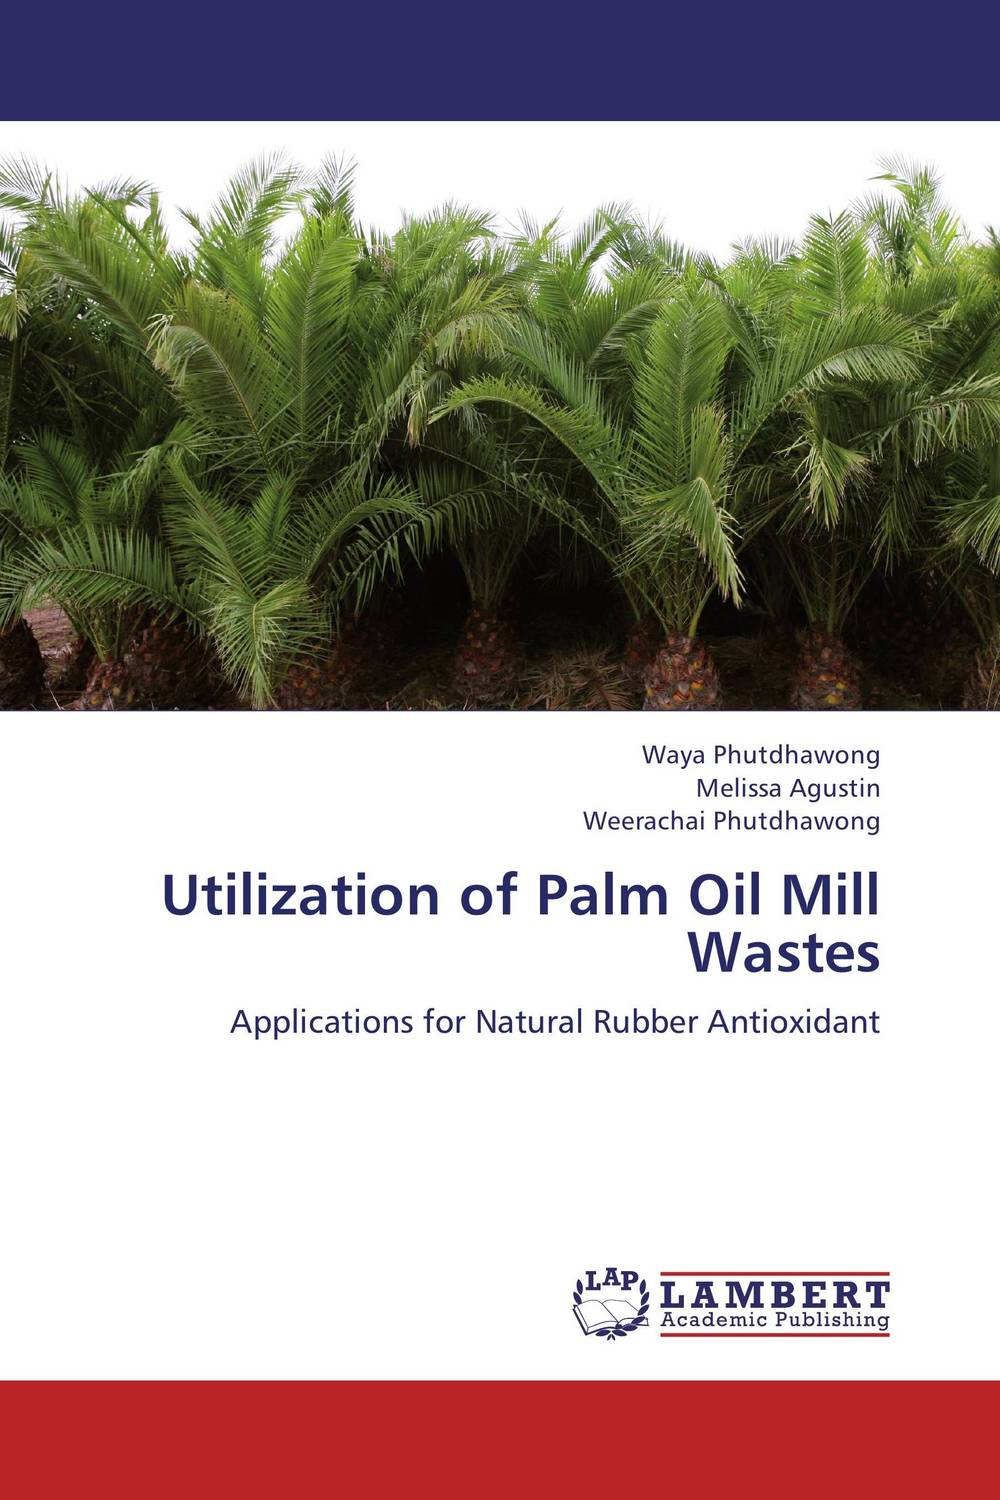 Utilization of Palm Oil Mill Wastes utilization of palm oil mill wastes